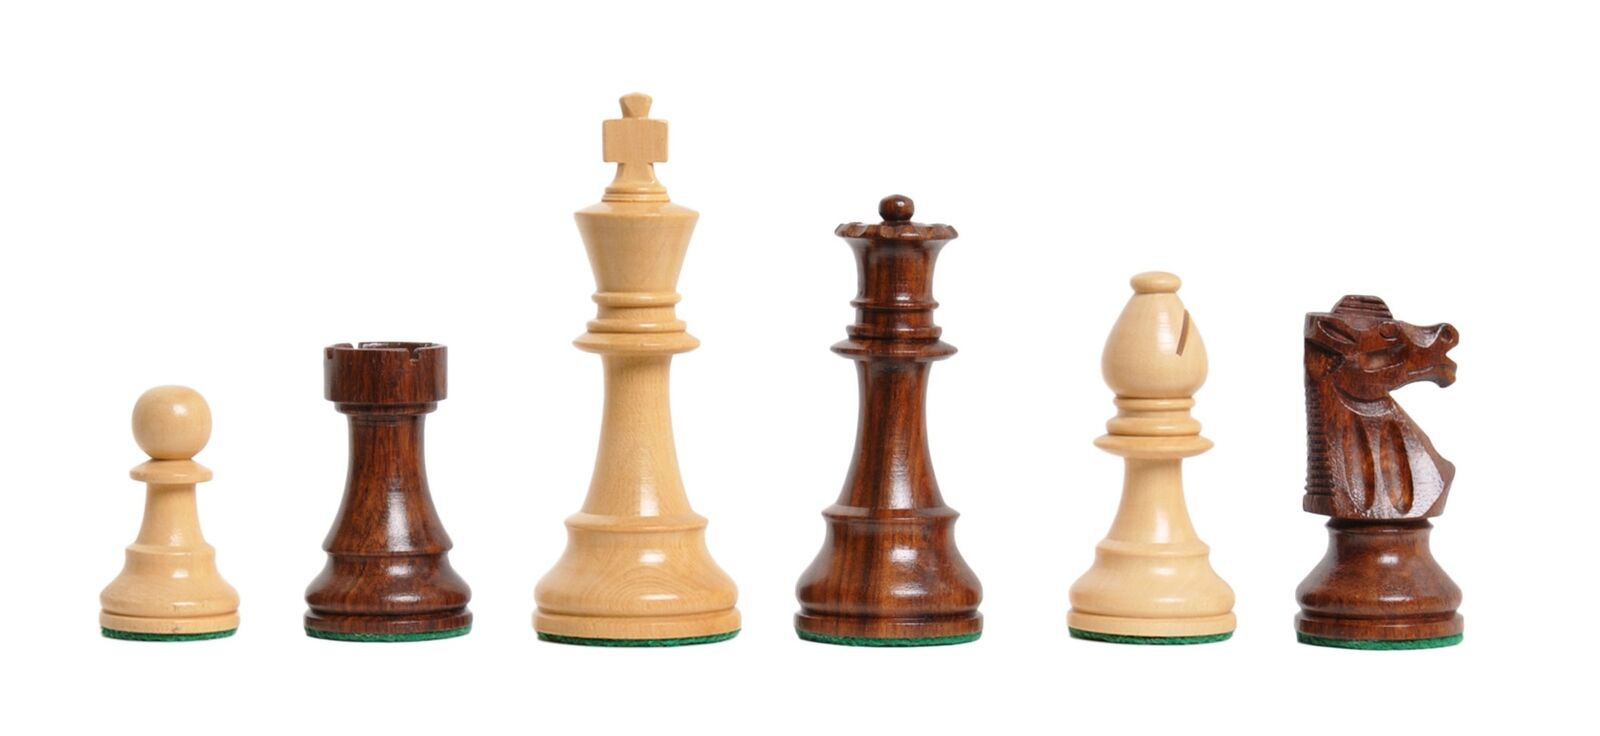 USCF Sales The Club Chess Set - Pieces Only - 3.75  King - oroen rosawood